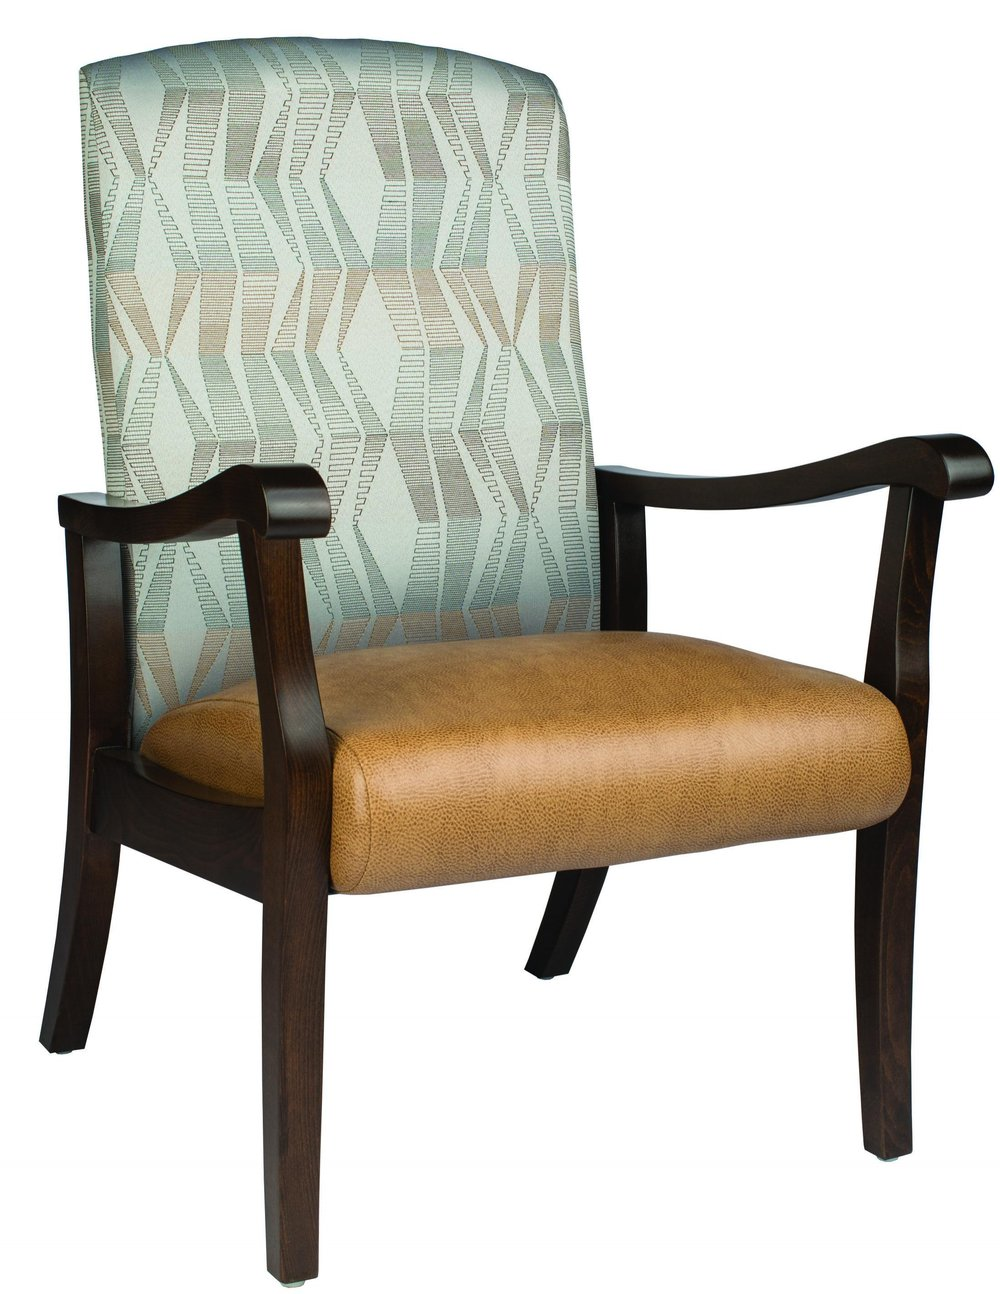 Kensington_Room_Chair_-_Rocker,_671-TCL,_Back_Jennis_Stellar_Lithium_902,_Seat_Jennis_Amarillo_6010_Moccasin_(front).jpg